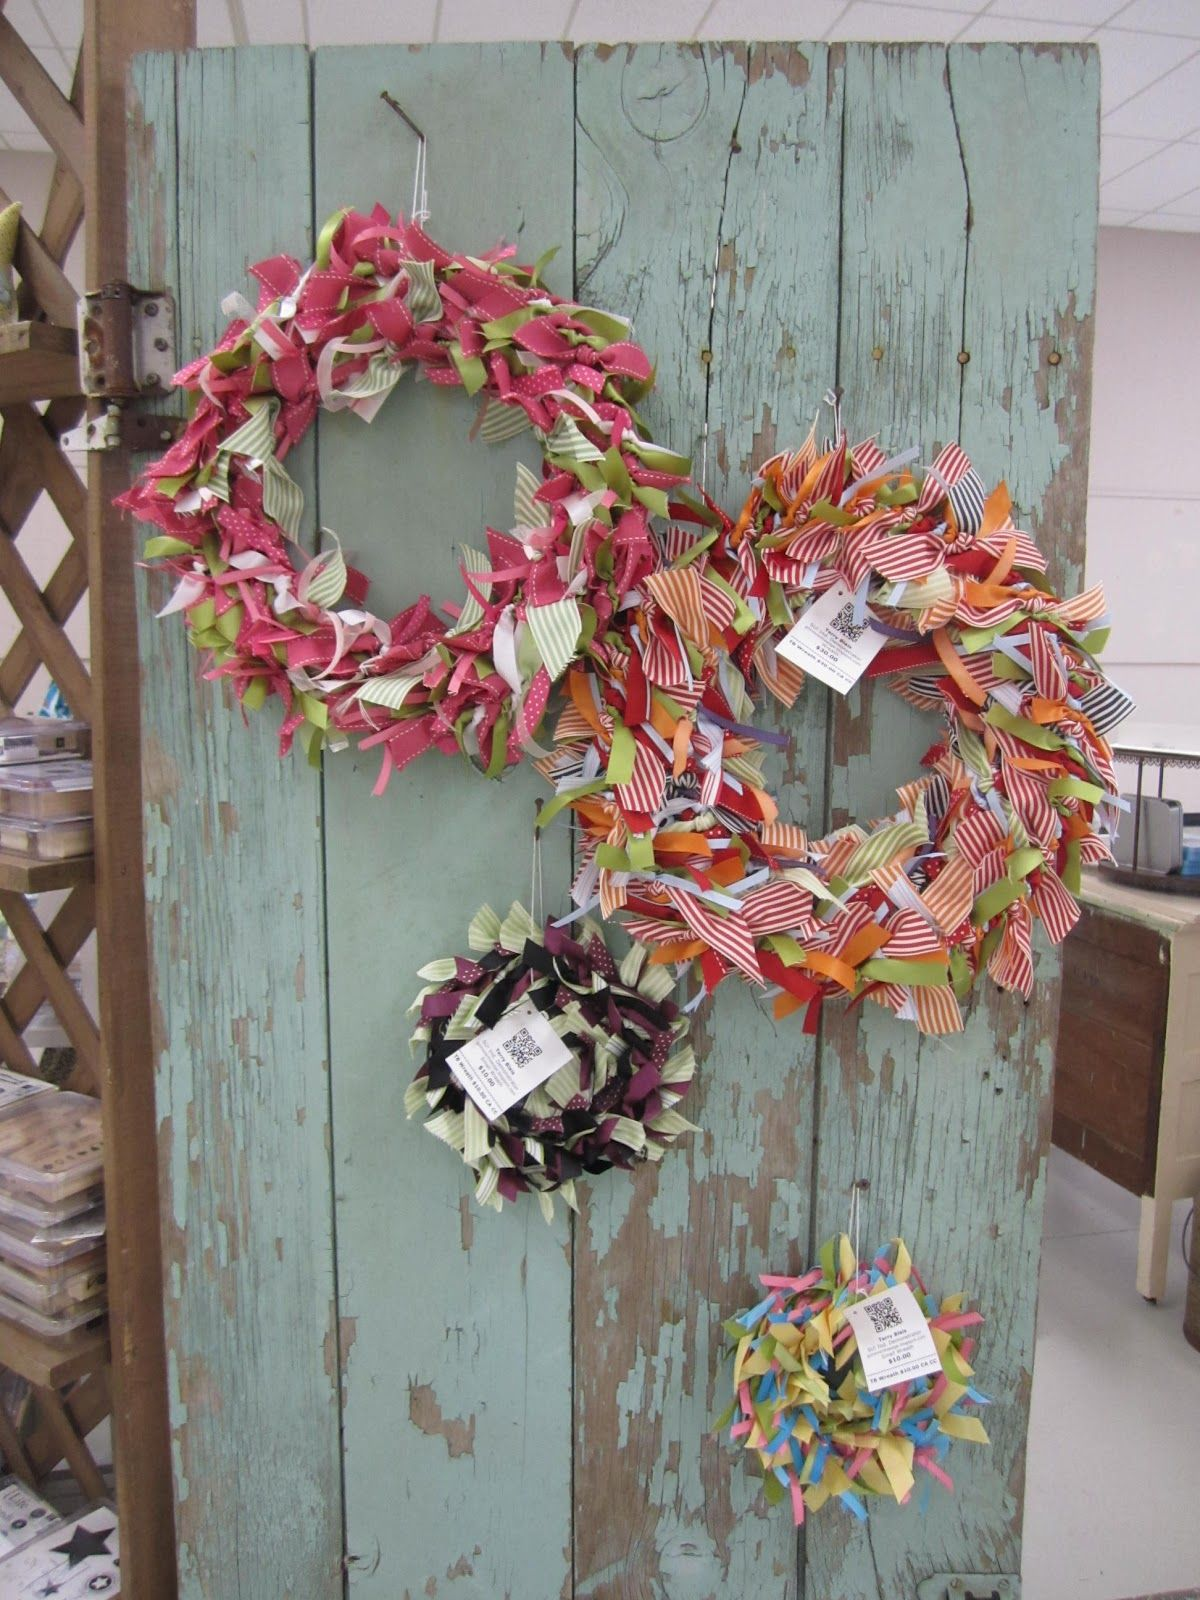 We actually used an old door to display these ribbon wreaths. It's attached to the lattice shelf next to it.